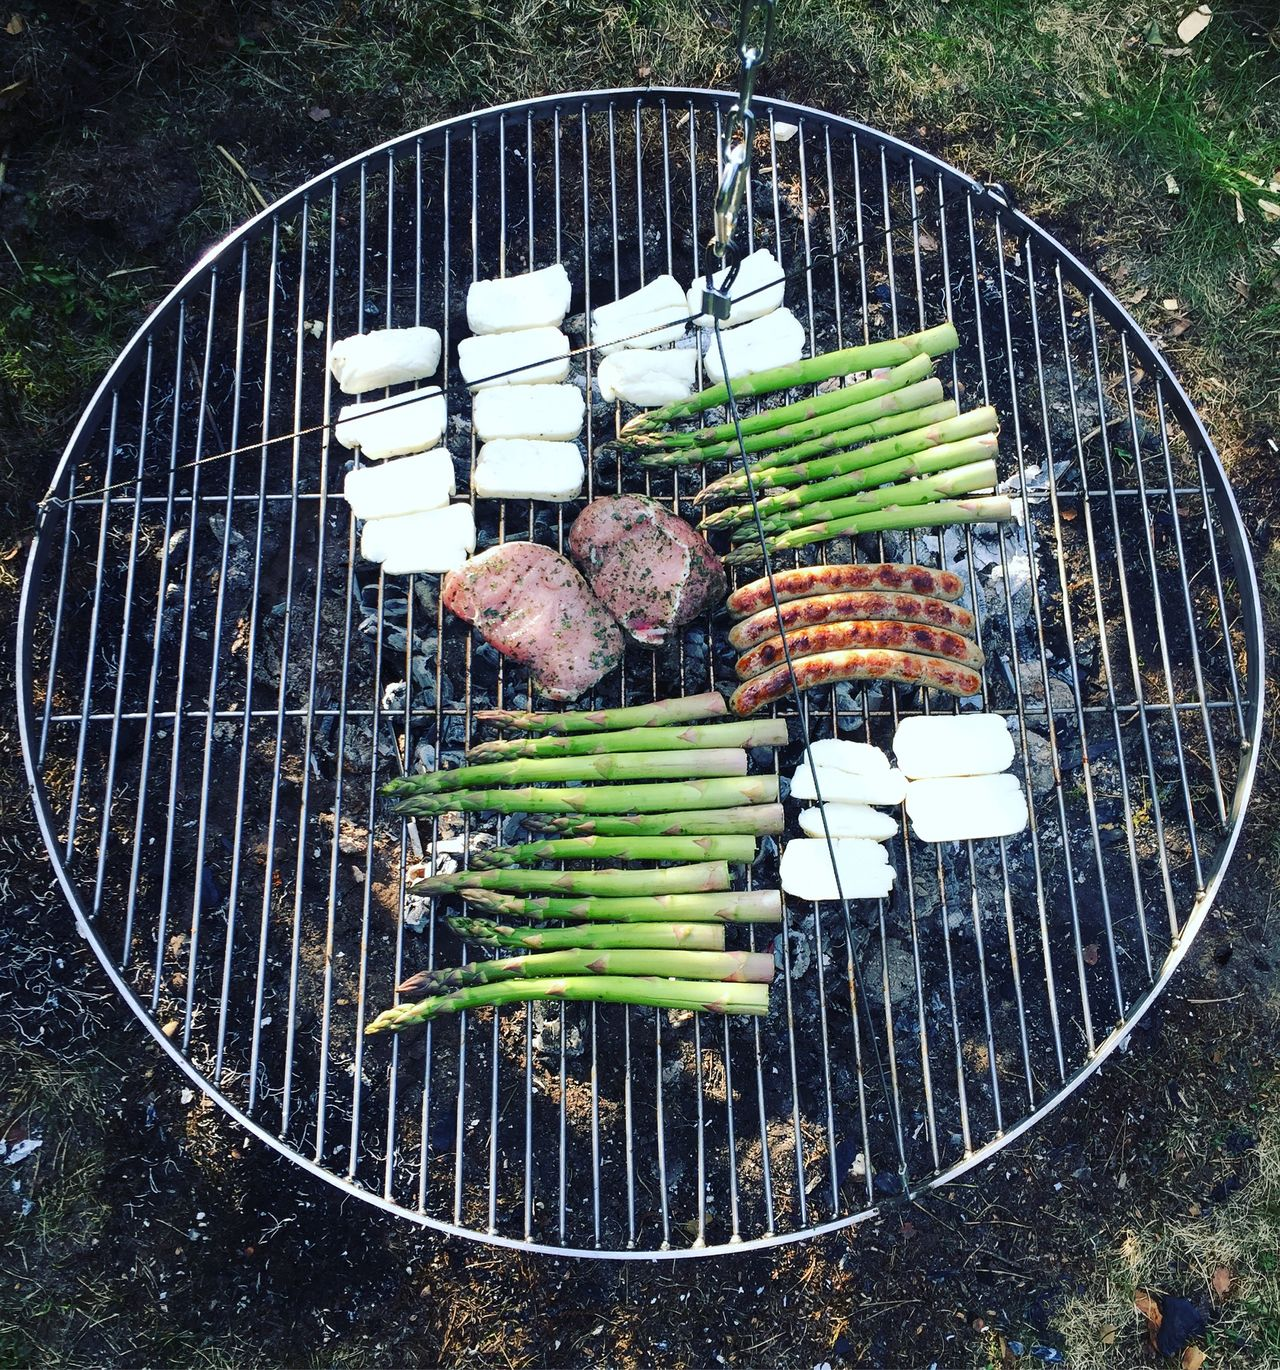 Asparagus Barbecue Barbecue Grill BBQ Coal Day Food Food And Drink Freshness Freshness Front Or Back Yard Grilled Halloumi Healthy Eating High Angle View Leisure Activity Meat No People Outdoors Preparation  Sausages Summer Vegan Vegetable Vegetarian Food